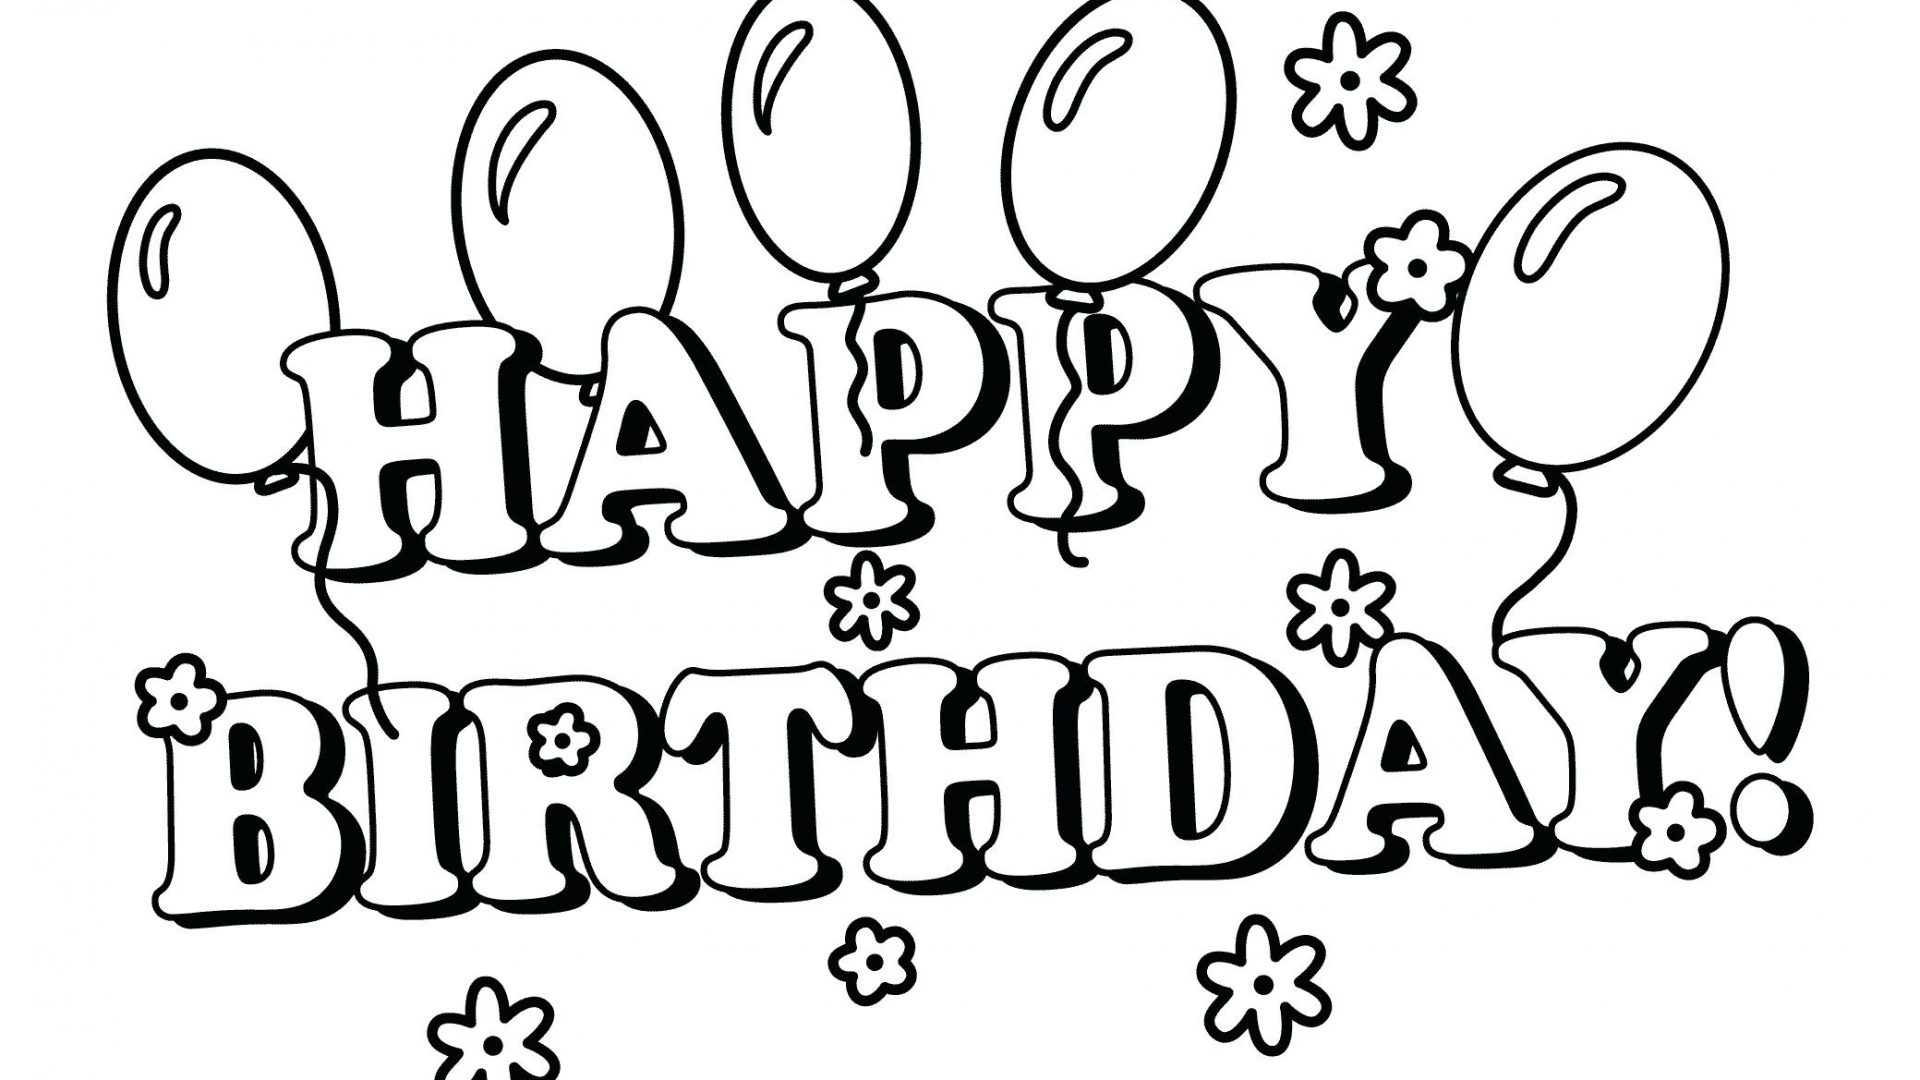 1920x1080 Happy Birthdayom Coloring Page Colouring Pages That Sayummy Sheets